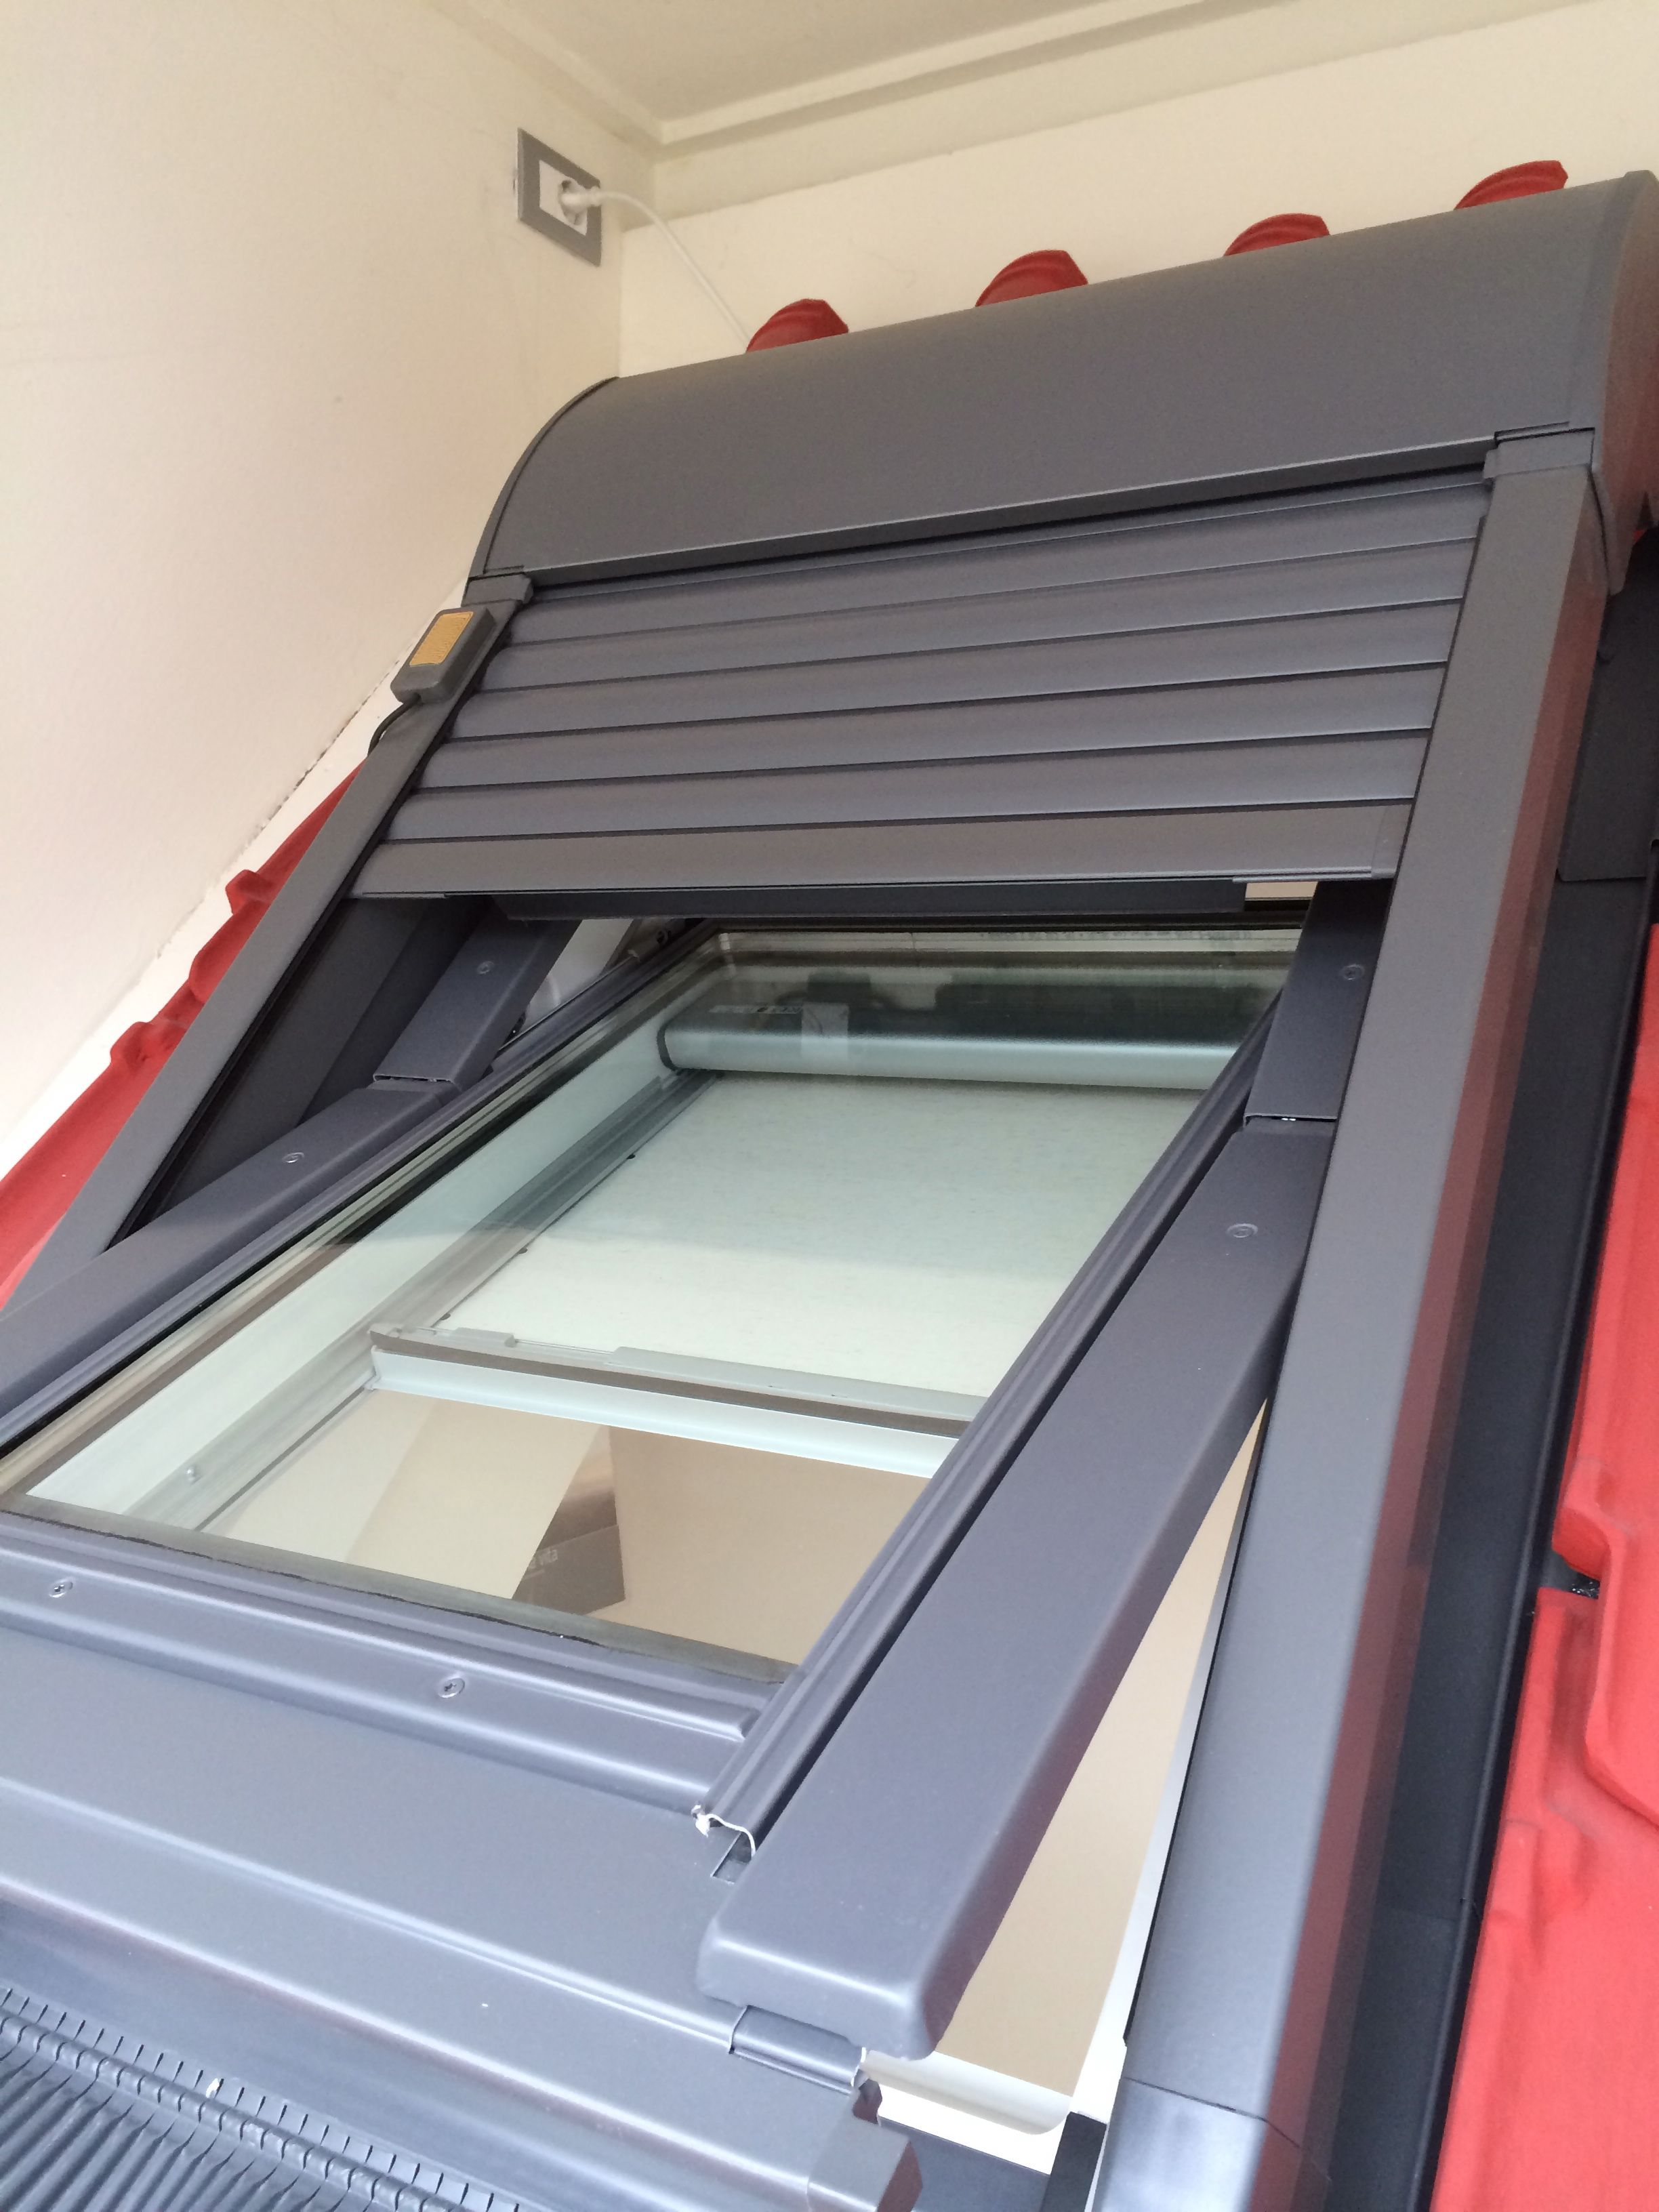 Velux window at special price! - Meinardi